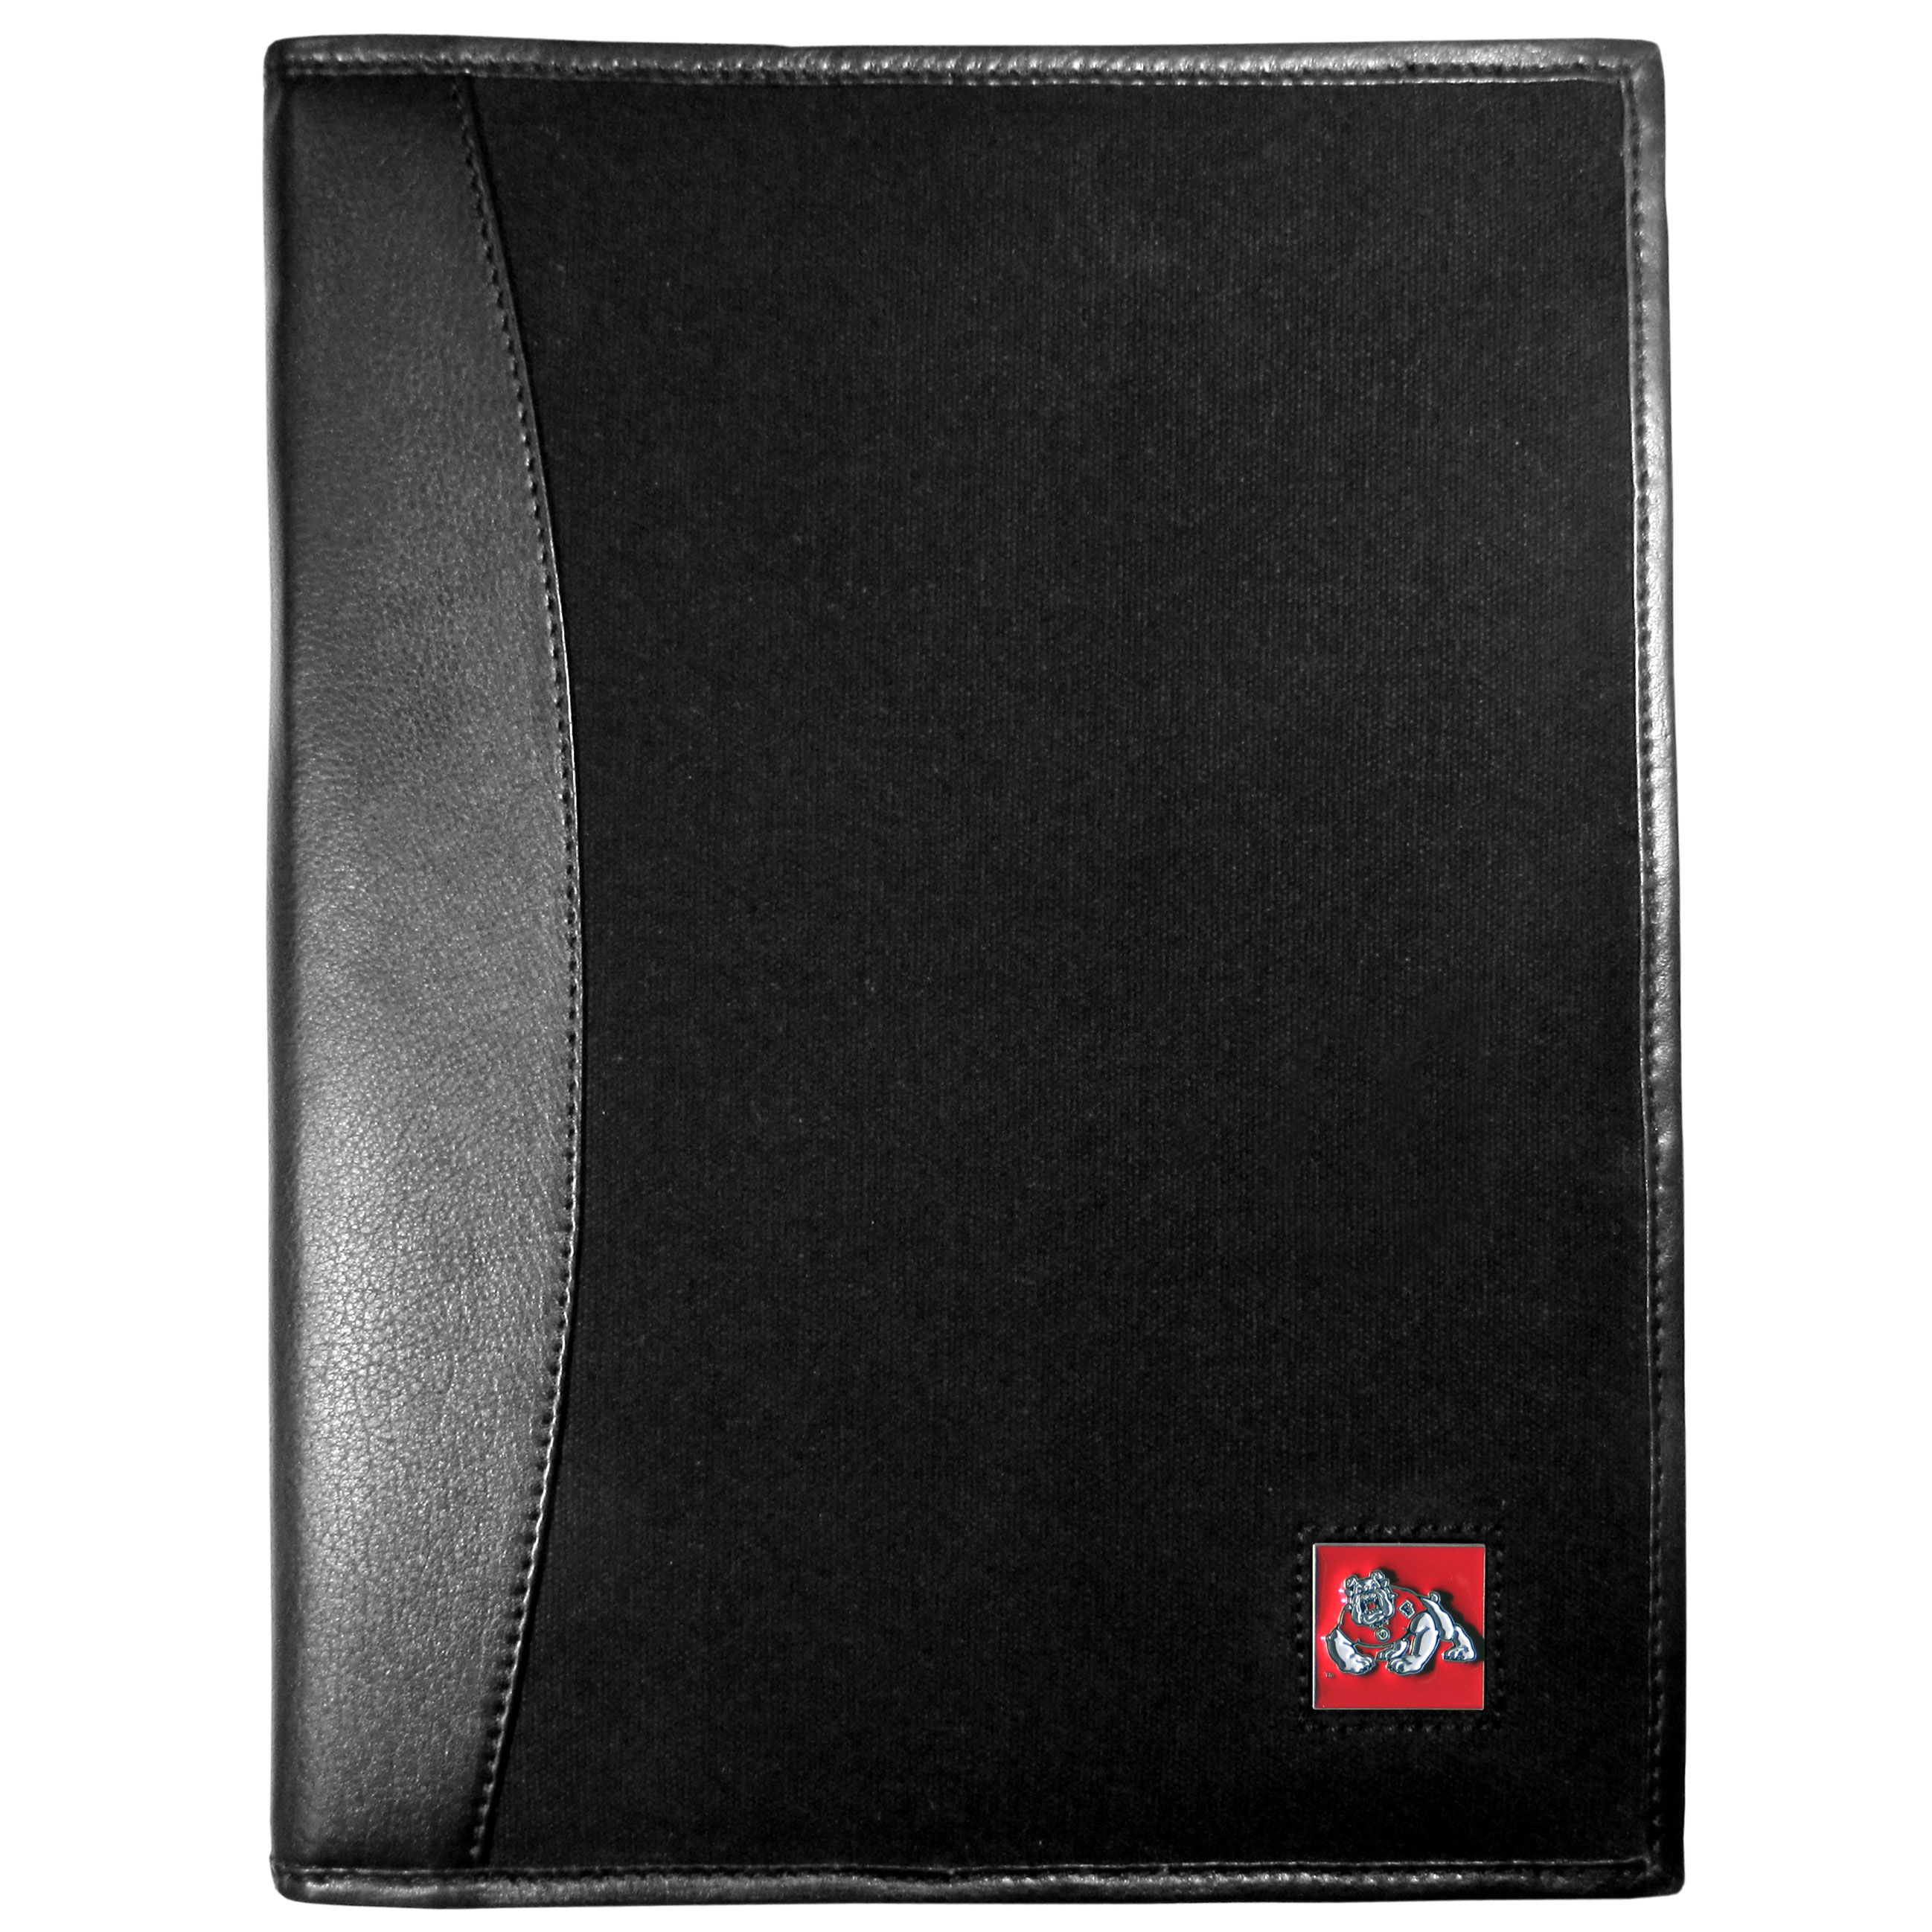 Fresno St. Bulldogs Leather and Canvas Padfolio - Our leather and canvas padfolio perfectly blends form and function. The attractive portfolio is bound in fine grain leather with an attractive canvas finish and the interior is a soft nylon. This high quality business accessory also features a fully cast metal Fresno St. Bulldogs emblem that is subtly set in the corner of the organizer. It is packed with features like 6 card slots for badges, business cards, hotel keys or credit cards and ID with a large pocket for loose papers and a writing tablet slot making it a must-have for the professional on the go.